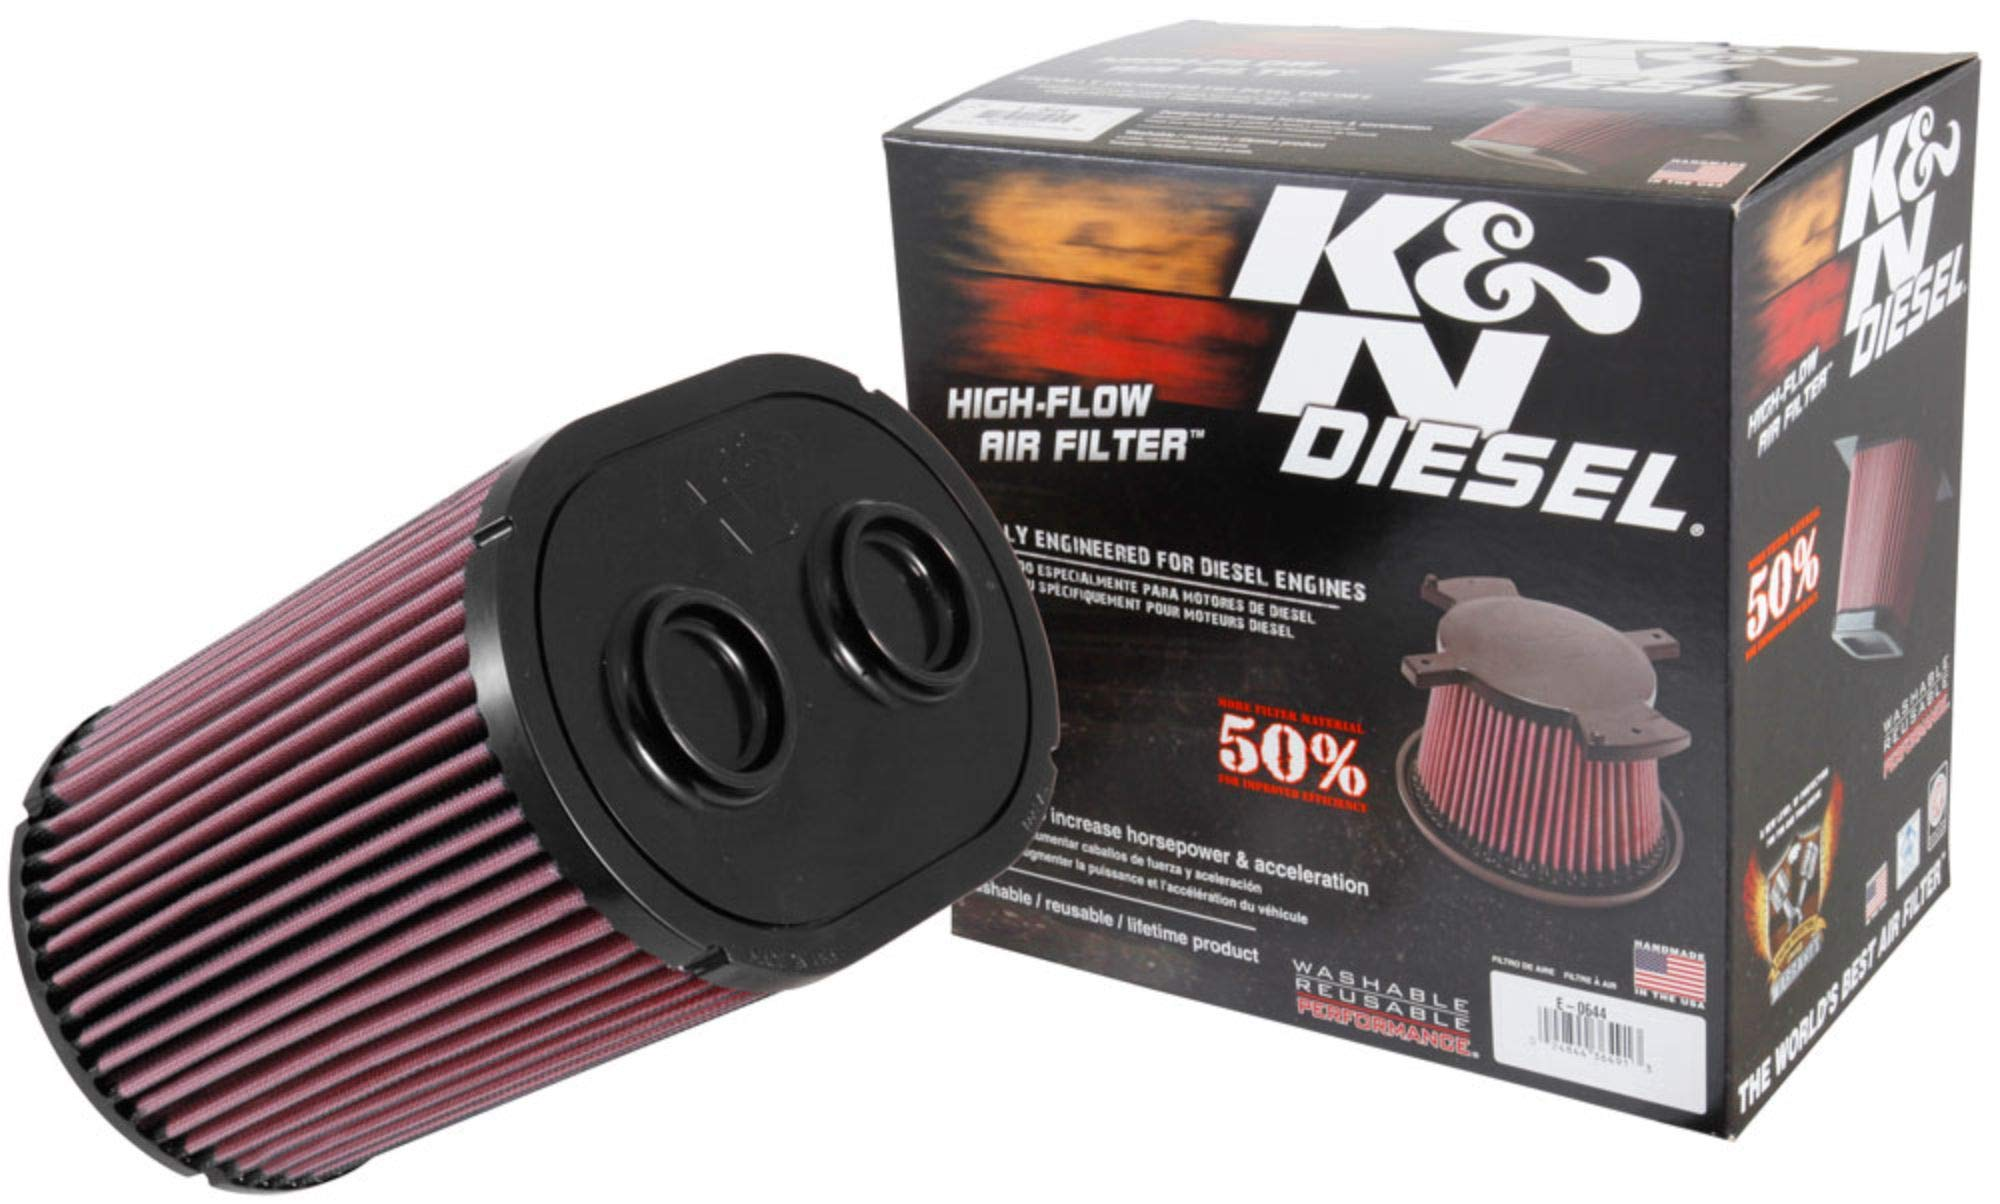 K/&N engine air filter washable and reusable 2017-2019 Honda Civic Type R 33-5070